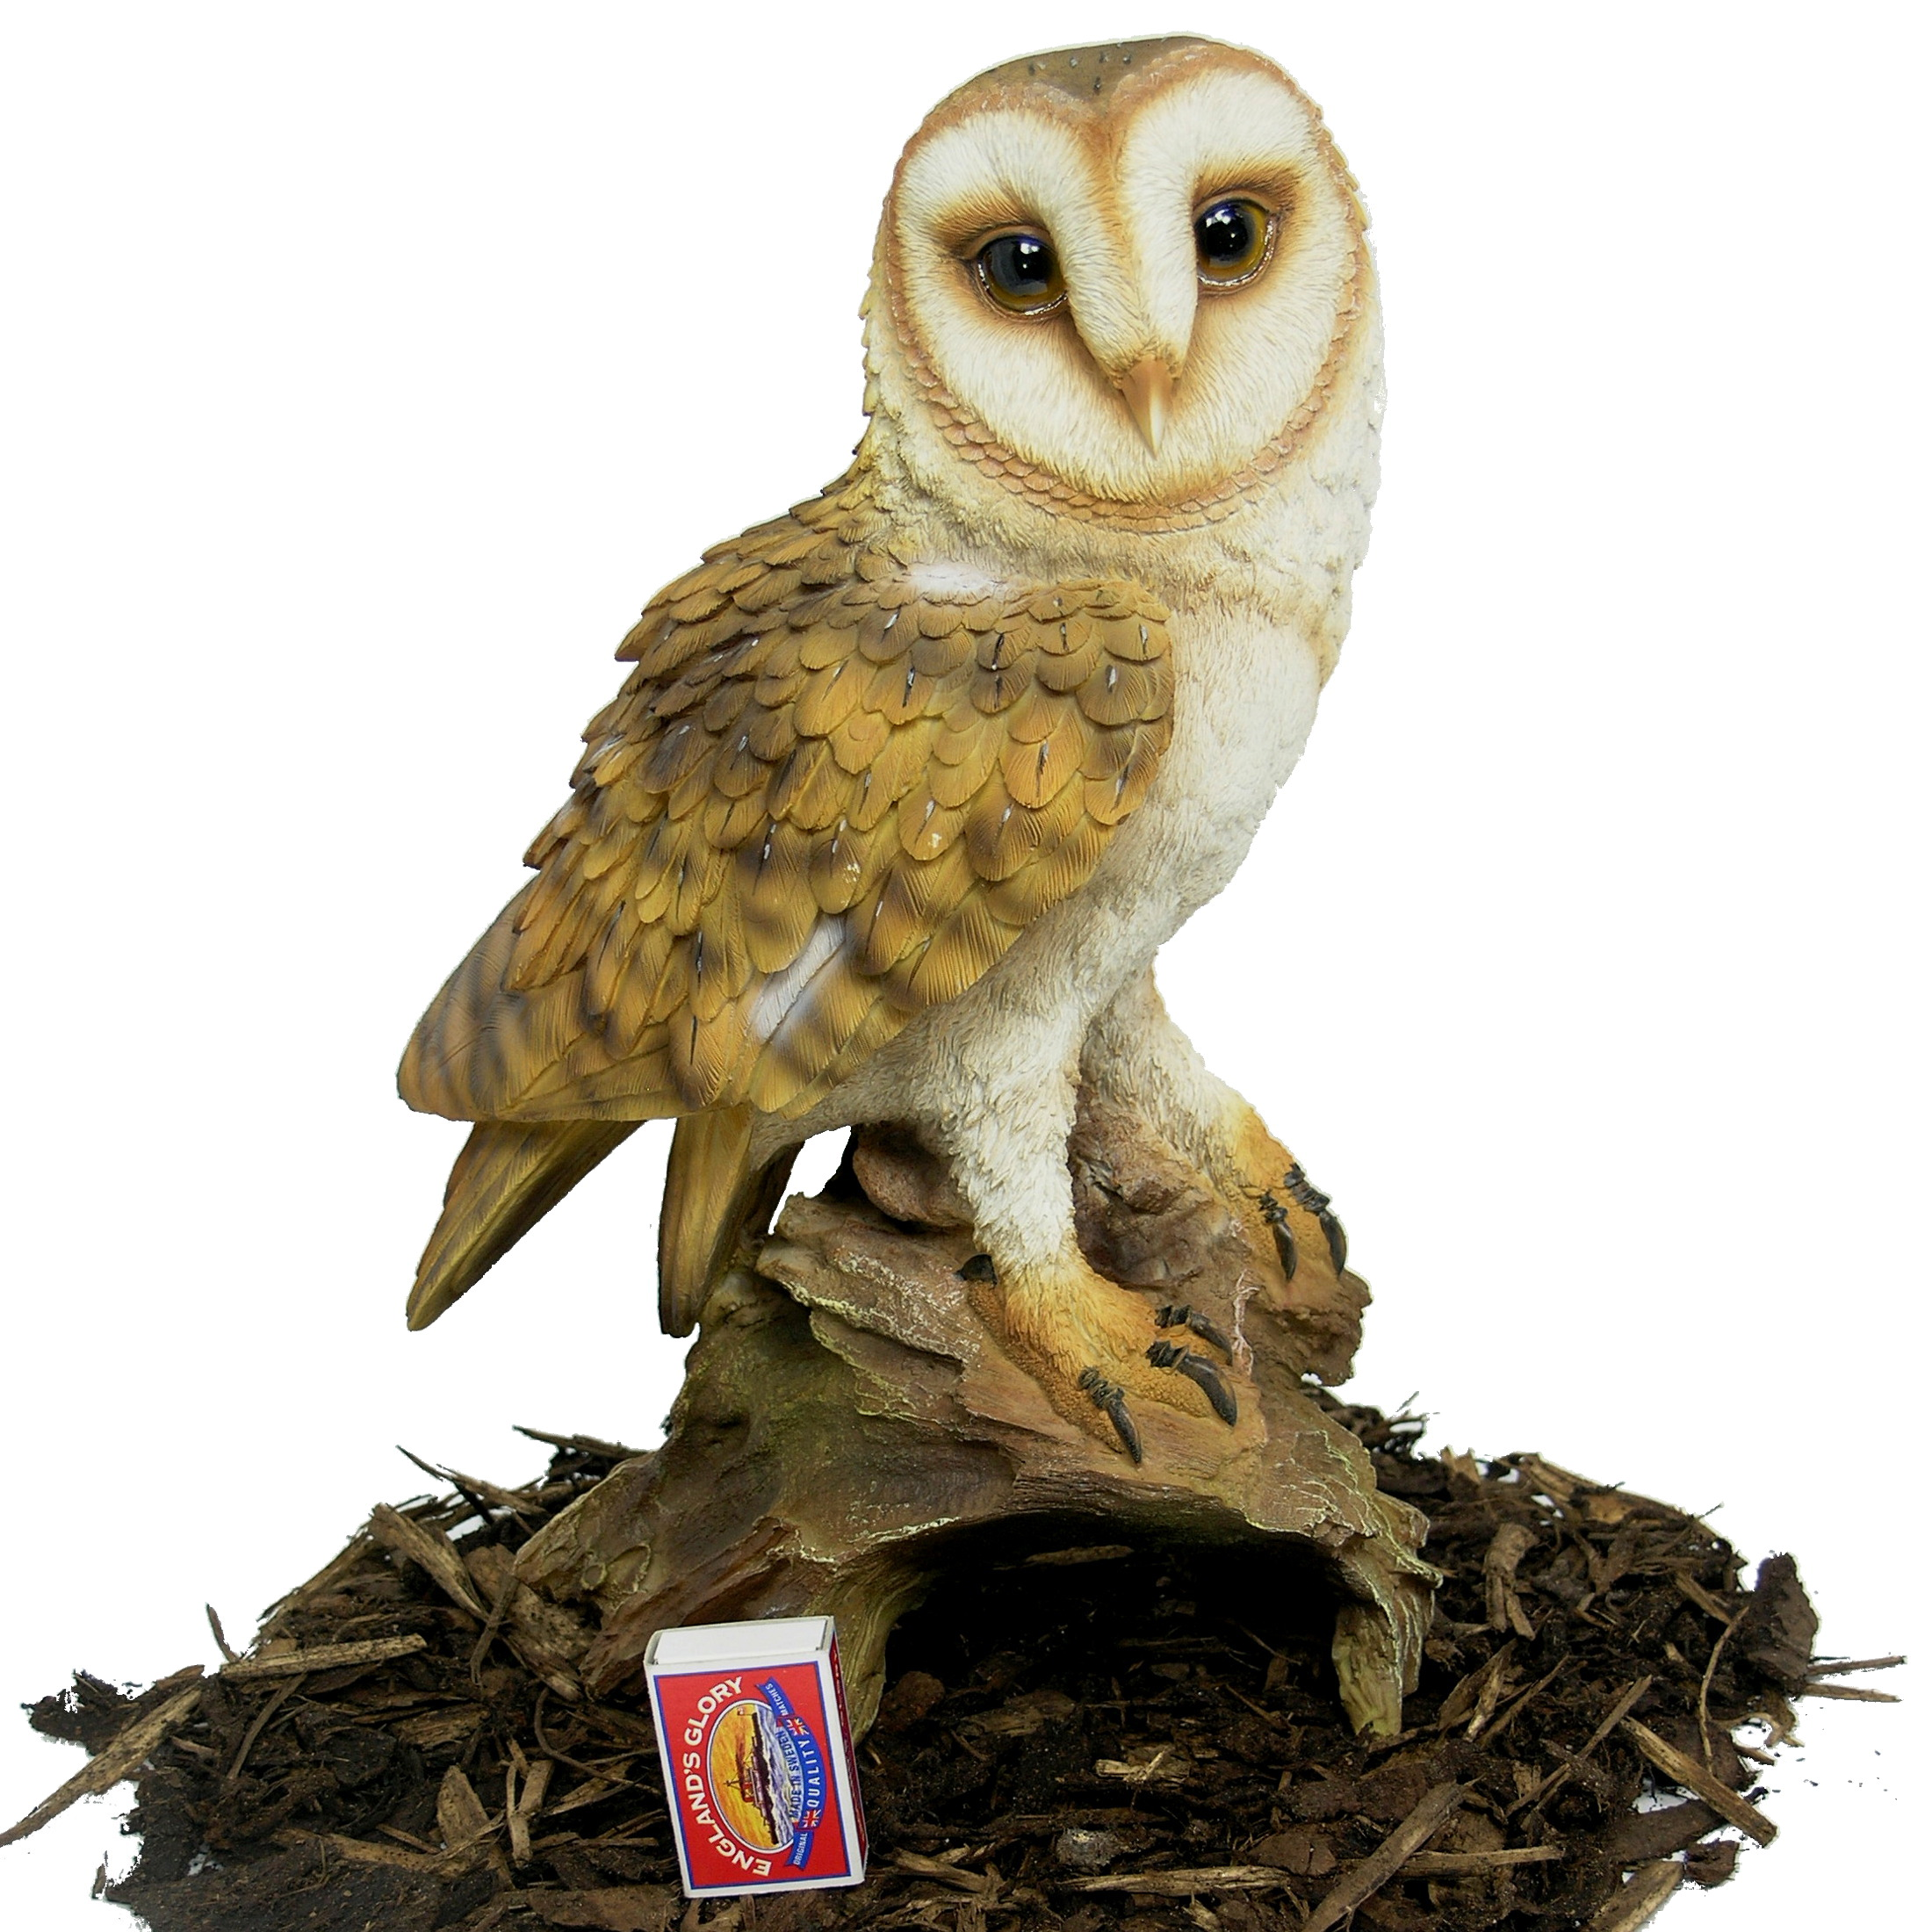 Barn Owl Resin Garden Ornament 2699 Garden4Less UK Shop